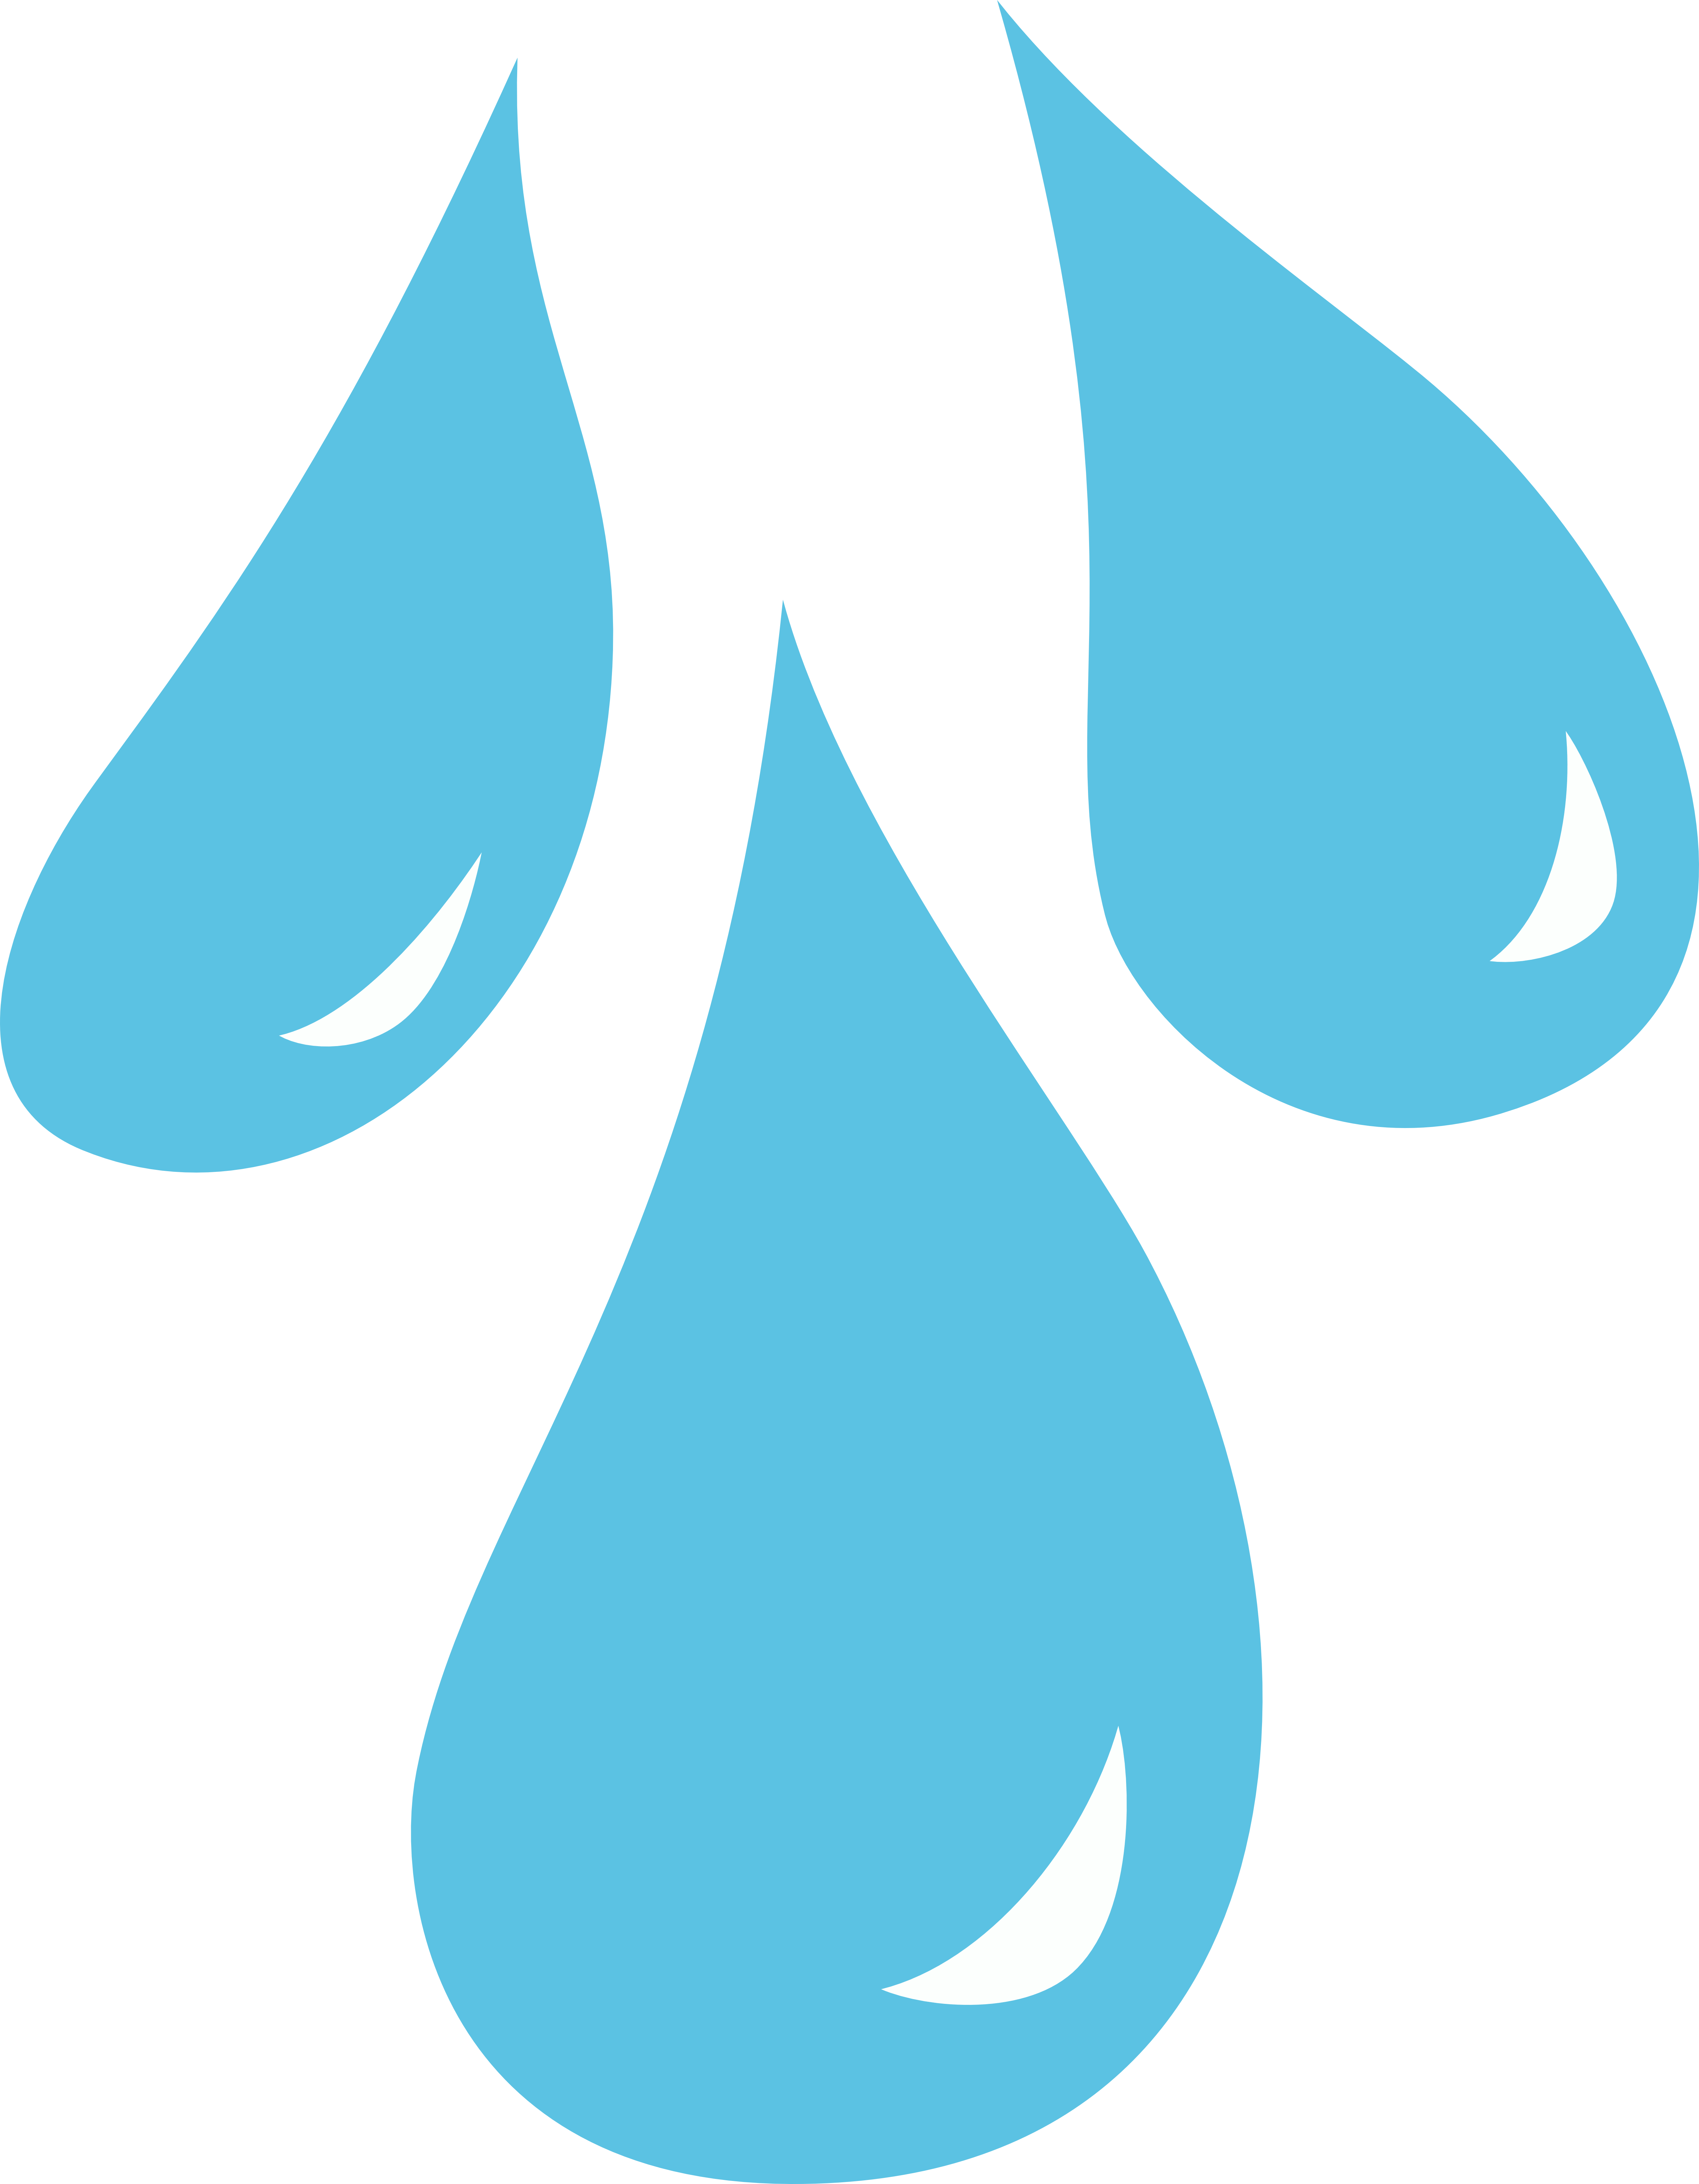 Free Water Shape Cliparts, Download Free Clip Art, Free Clip.